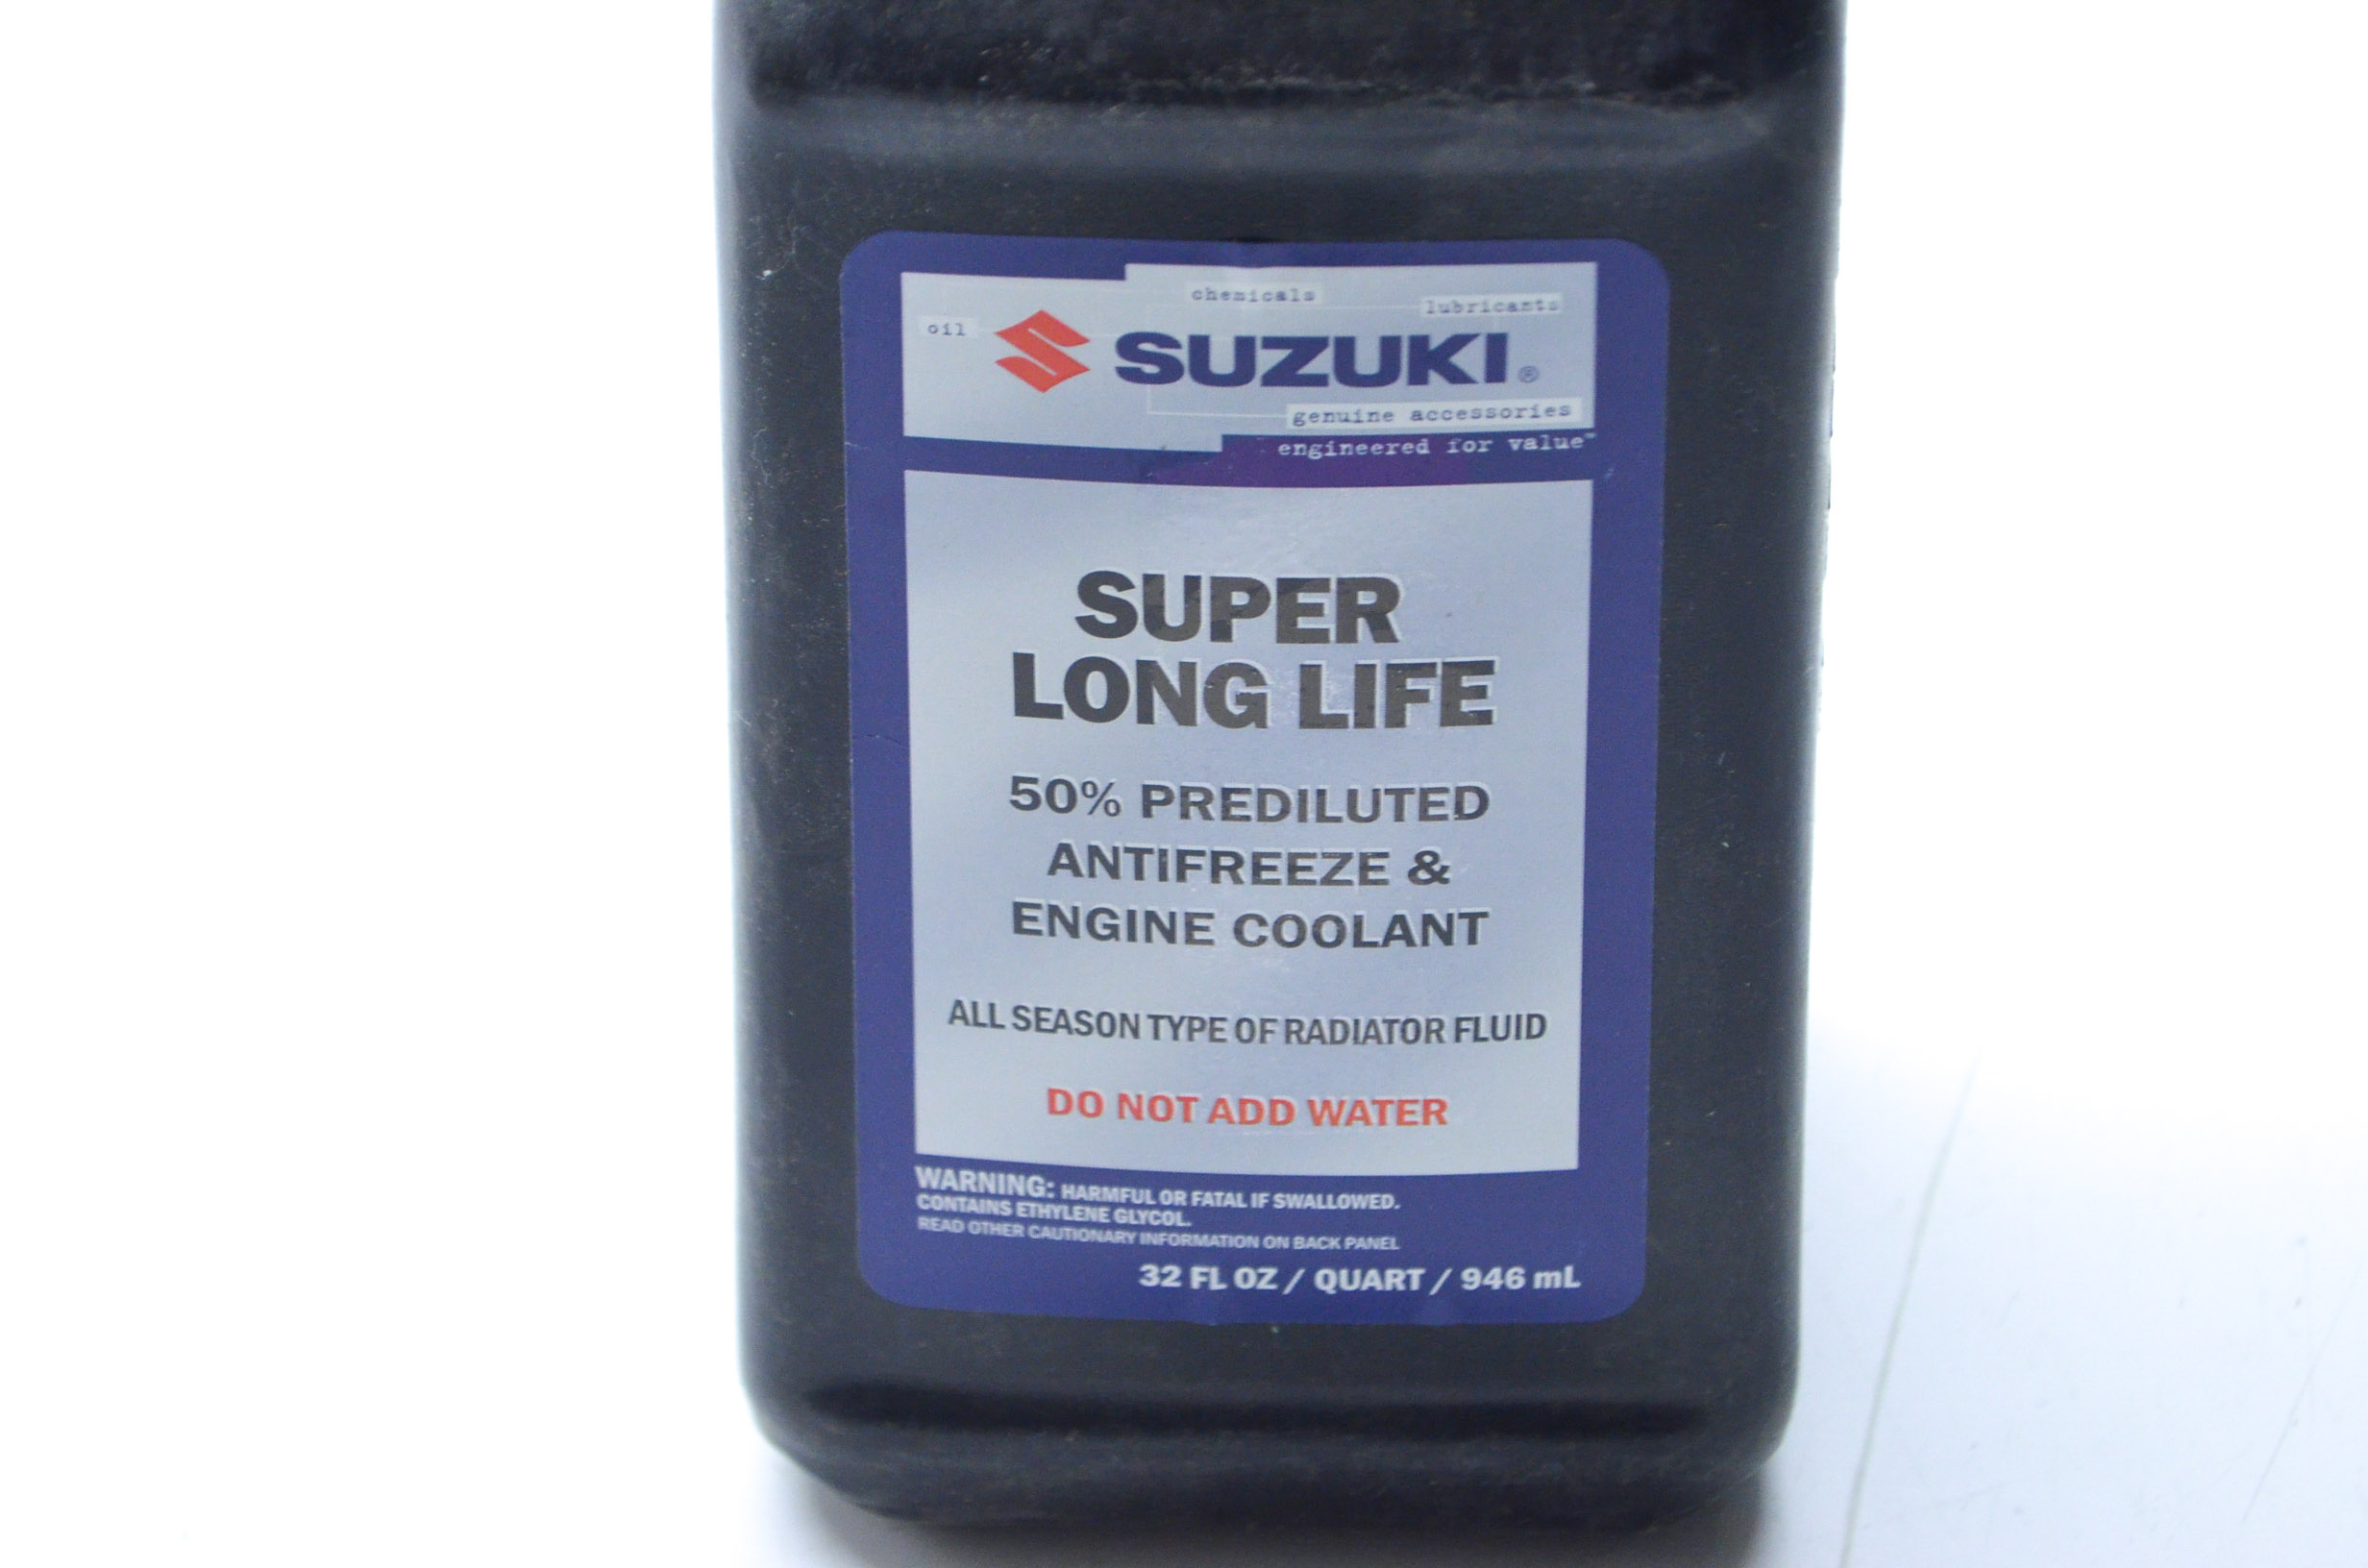 Suzuki Engine Coolant : New oem suzuki super long life prediluted antifreeze